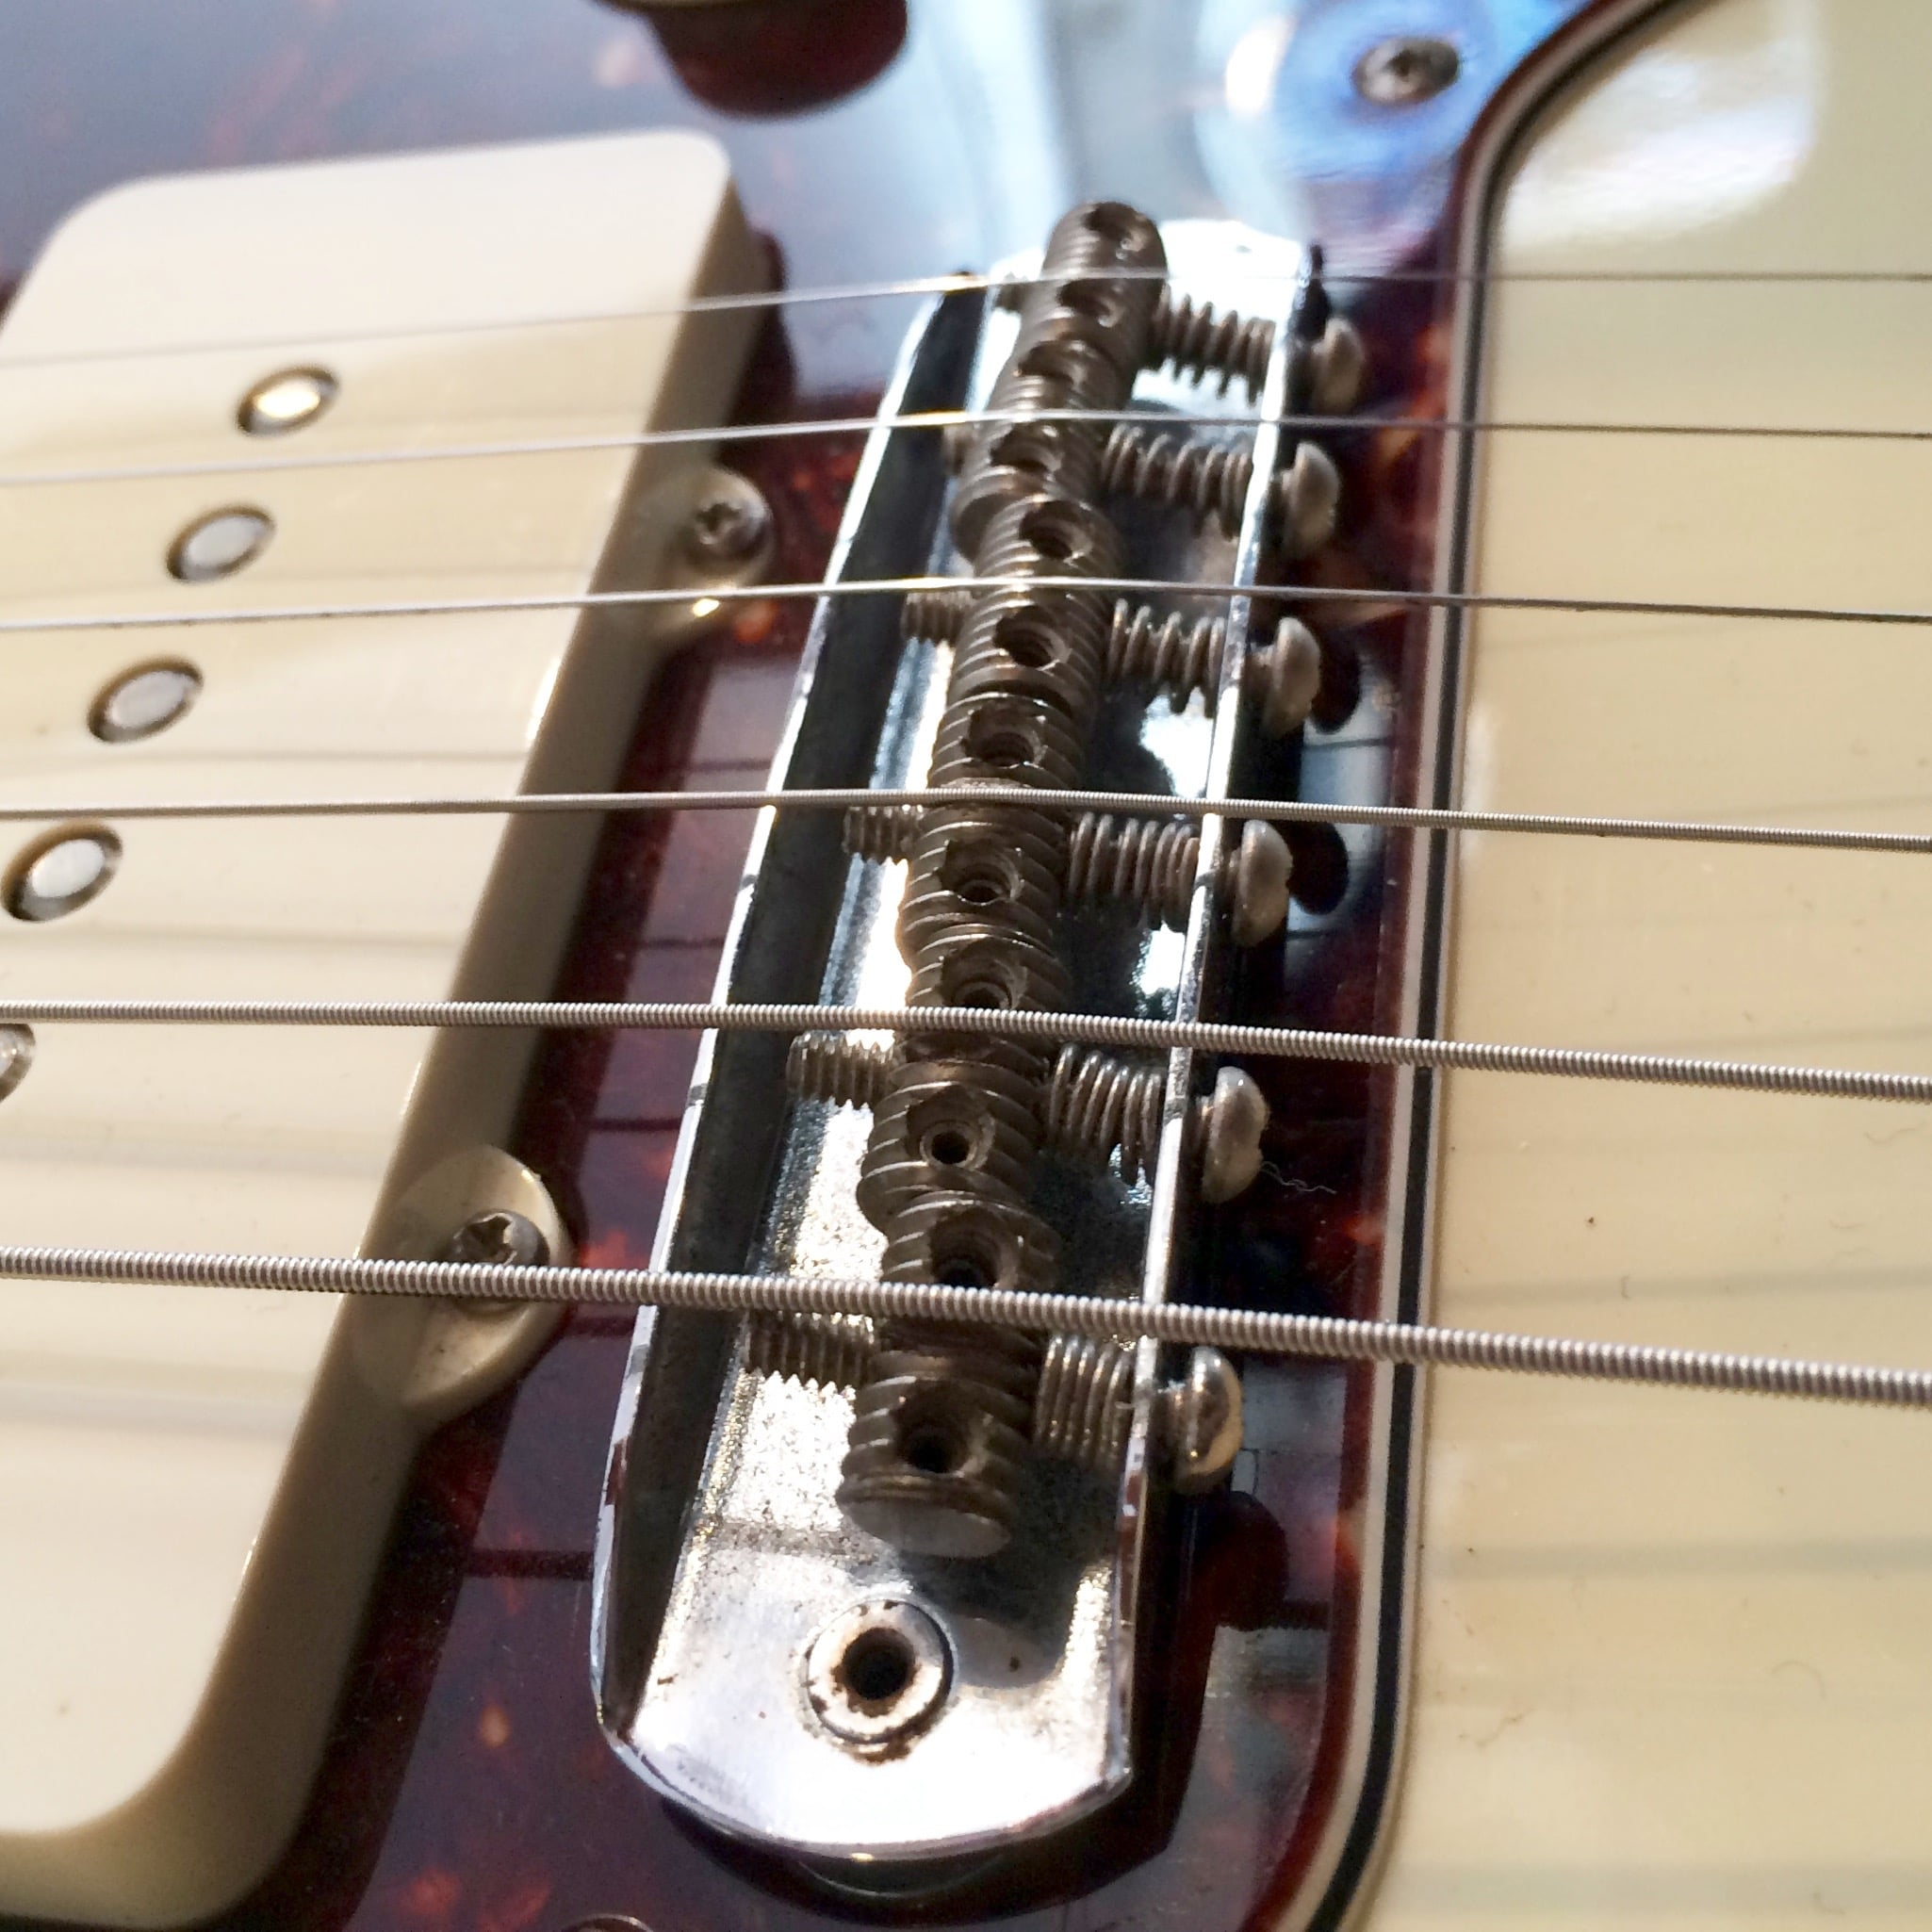 Jazzmaster/Jaguar Bridge -Intonation by adjusting screws at rear